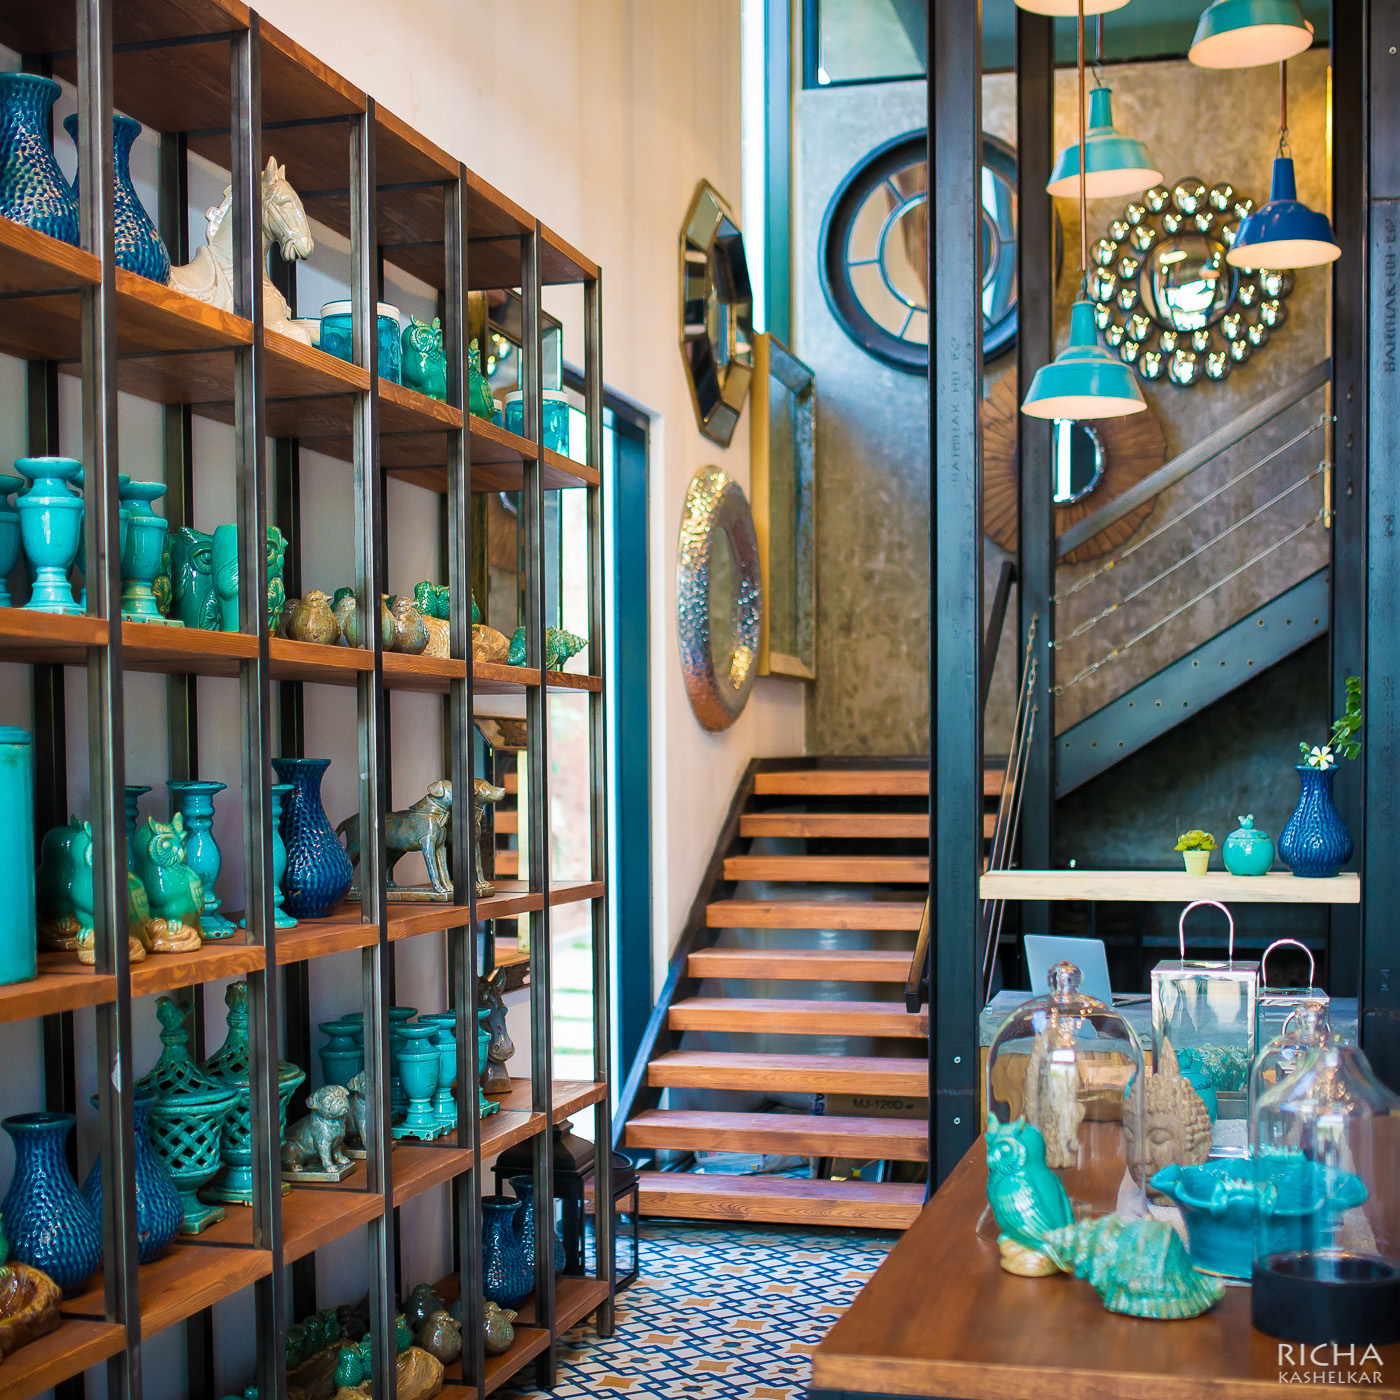 Room Therapy-first Look Of Sona Reddy's Flagship Store